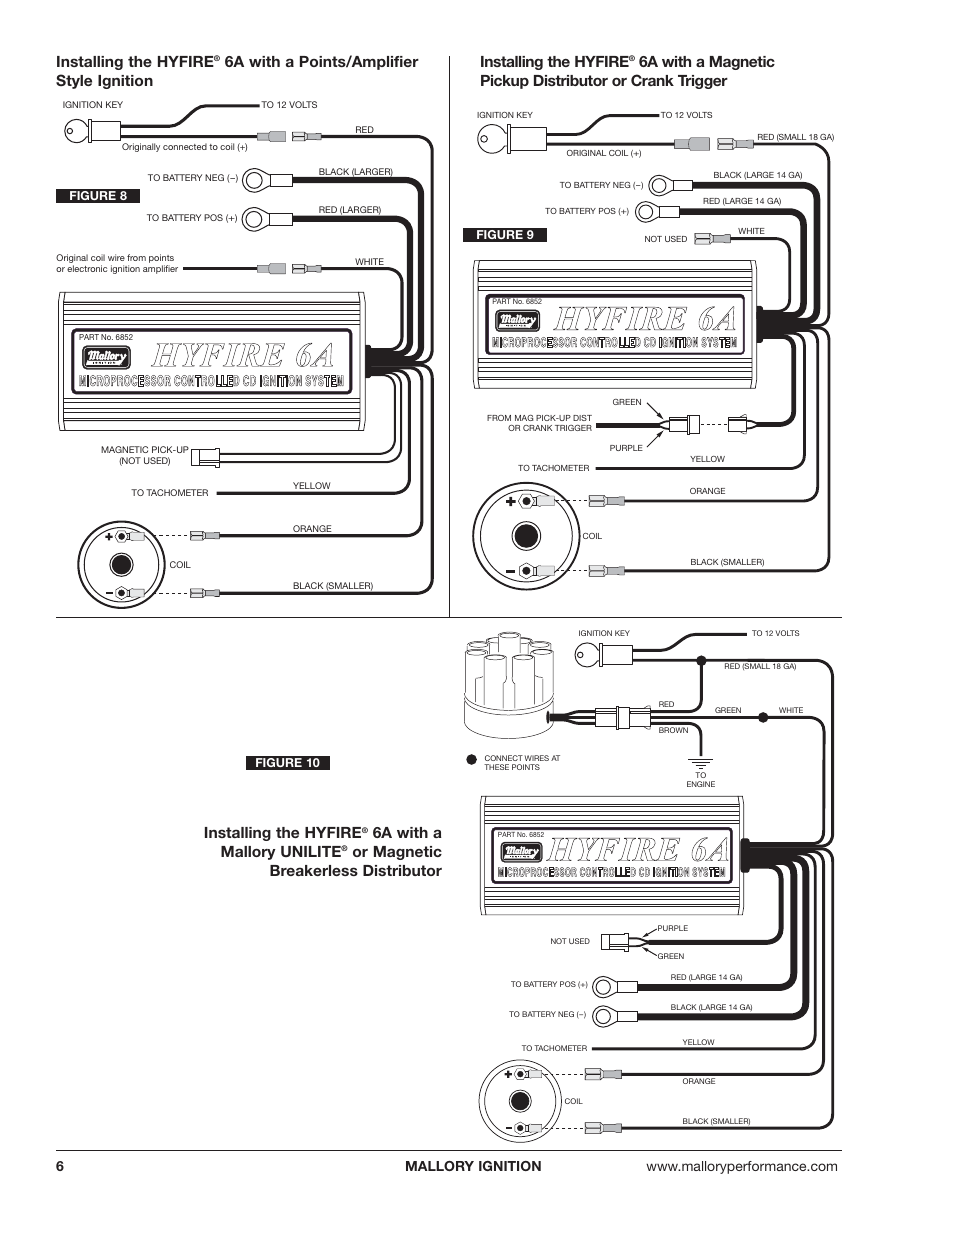 08063 Mallory 6al Wiring Diagram | Digital Resources on typical ignition system diagram, msd ignition installation, msd mounting, msd 2 step wiring-diagram, msd ignition system, msd 7al box diagram, meziere wiring diagram, msd ignition coil, ford alternator wiring diagram, msd hei wiring-diagram, auto meter wiring diagram, lokar wiring diagram, pertronix wiring diagram, painless wiring wiring diagram, msd ignition connector, taylor wiring diagram, nos wiring diagram, smittybilt wiring diagram, msd ford wiring diagrams, msd 6a wiring-diagram,